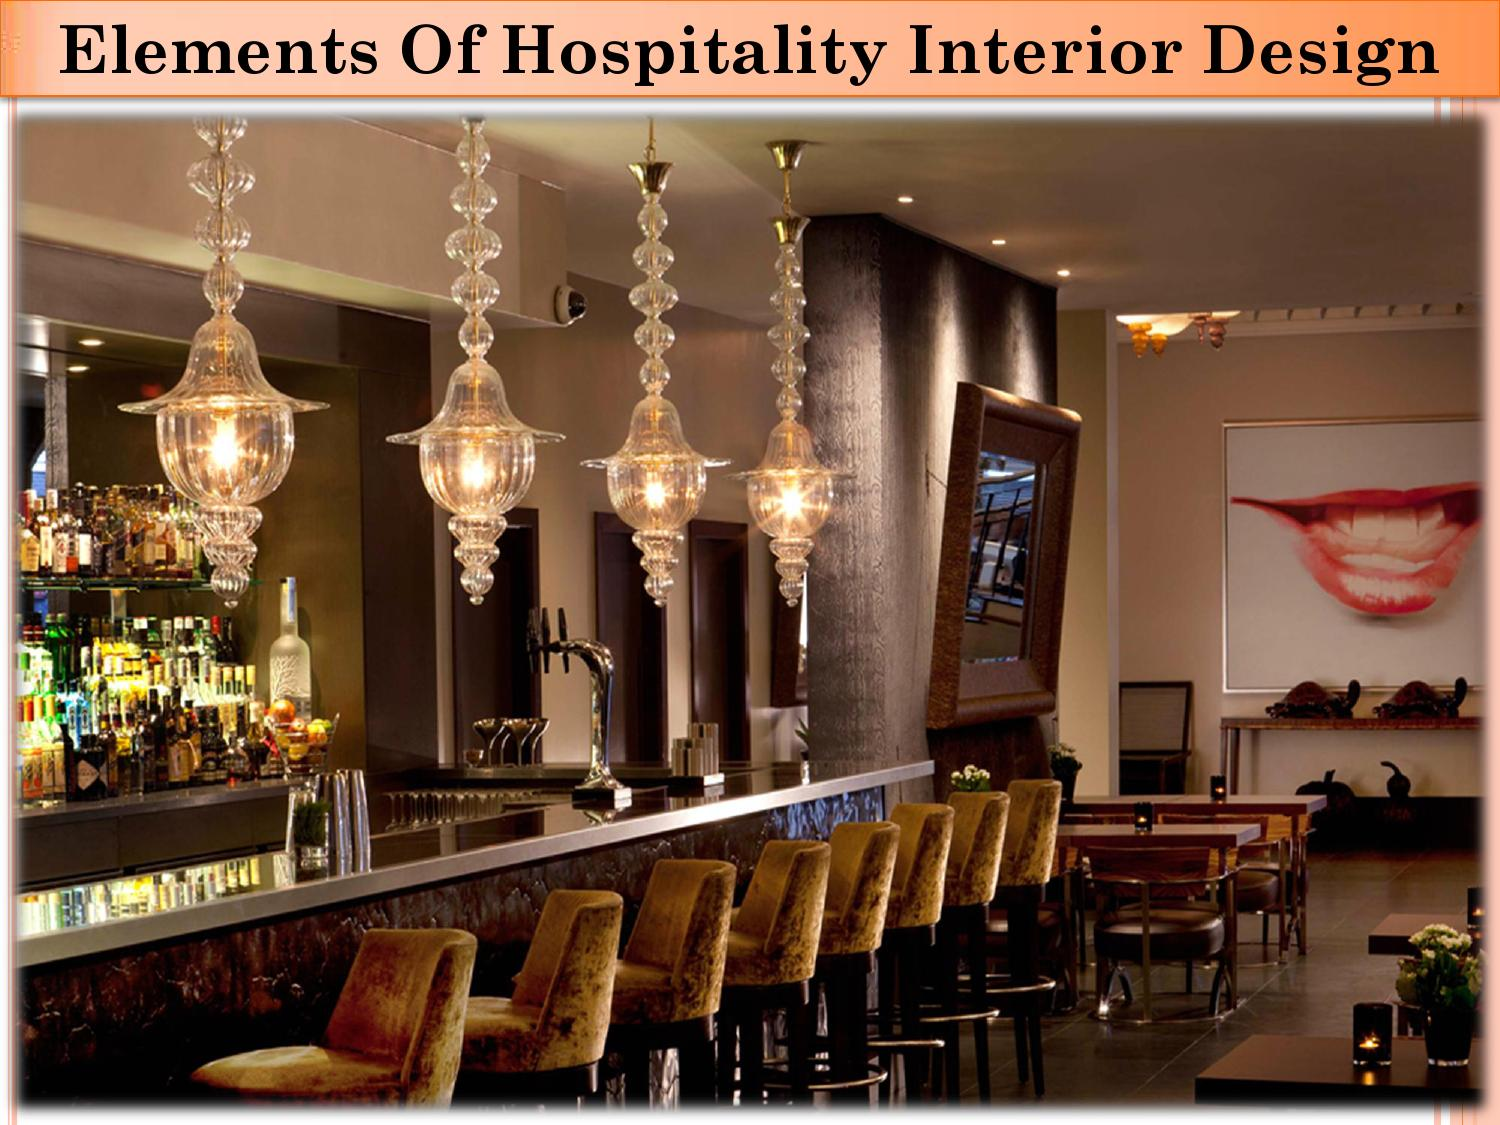 Elements of hospitality interior design by protech Elements of interior design